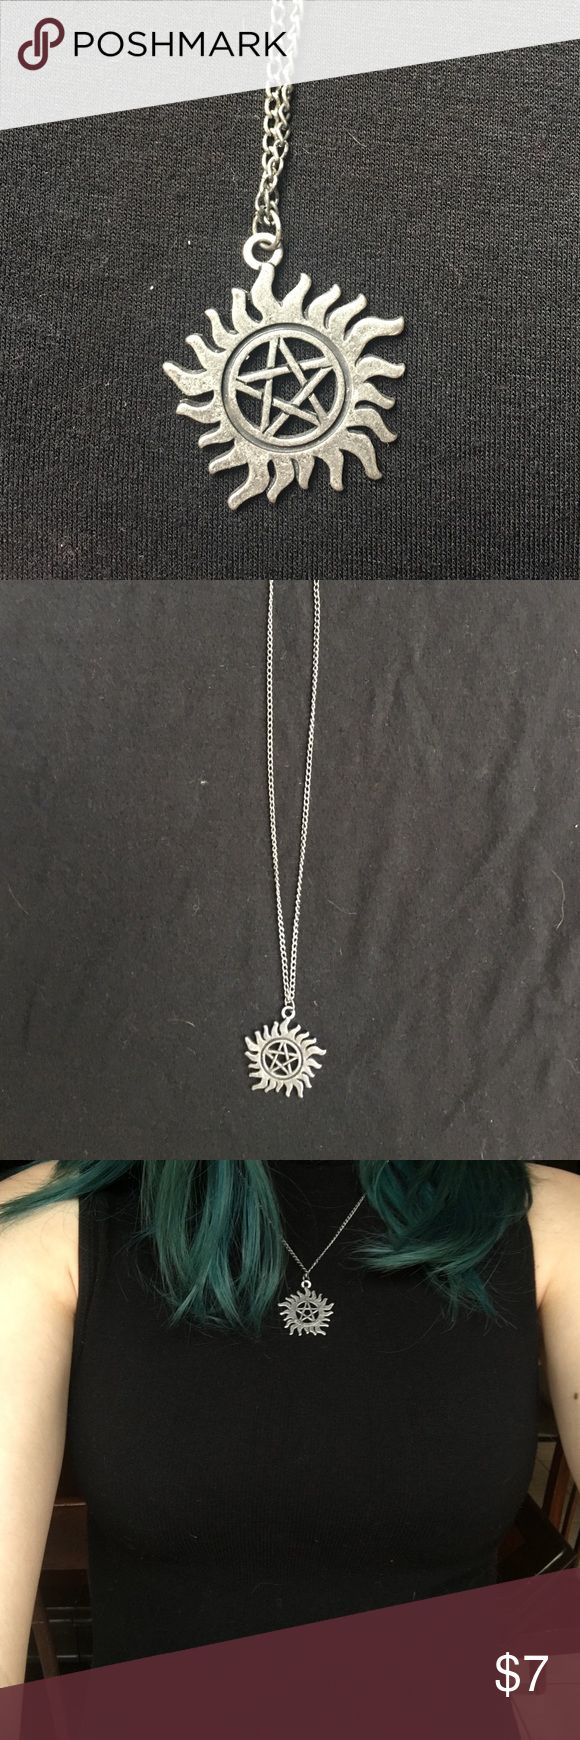 Supernatural necklace - Hot Topic Supernatural merchandise                                   Perfect condition                                                     Reasonable offers are encouraged! Hot Topic Jewelry Necklaces